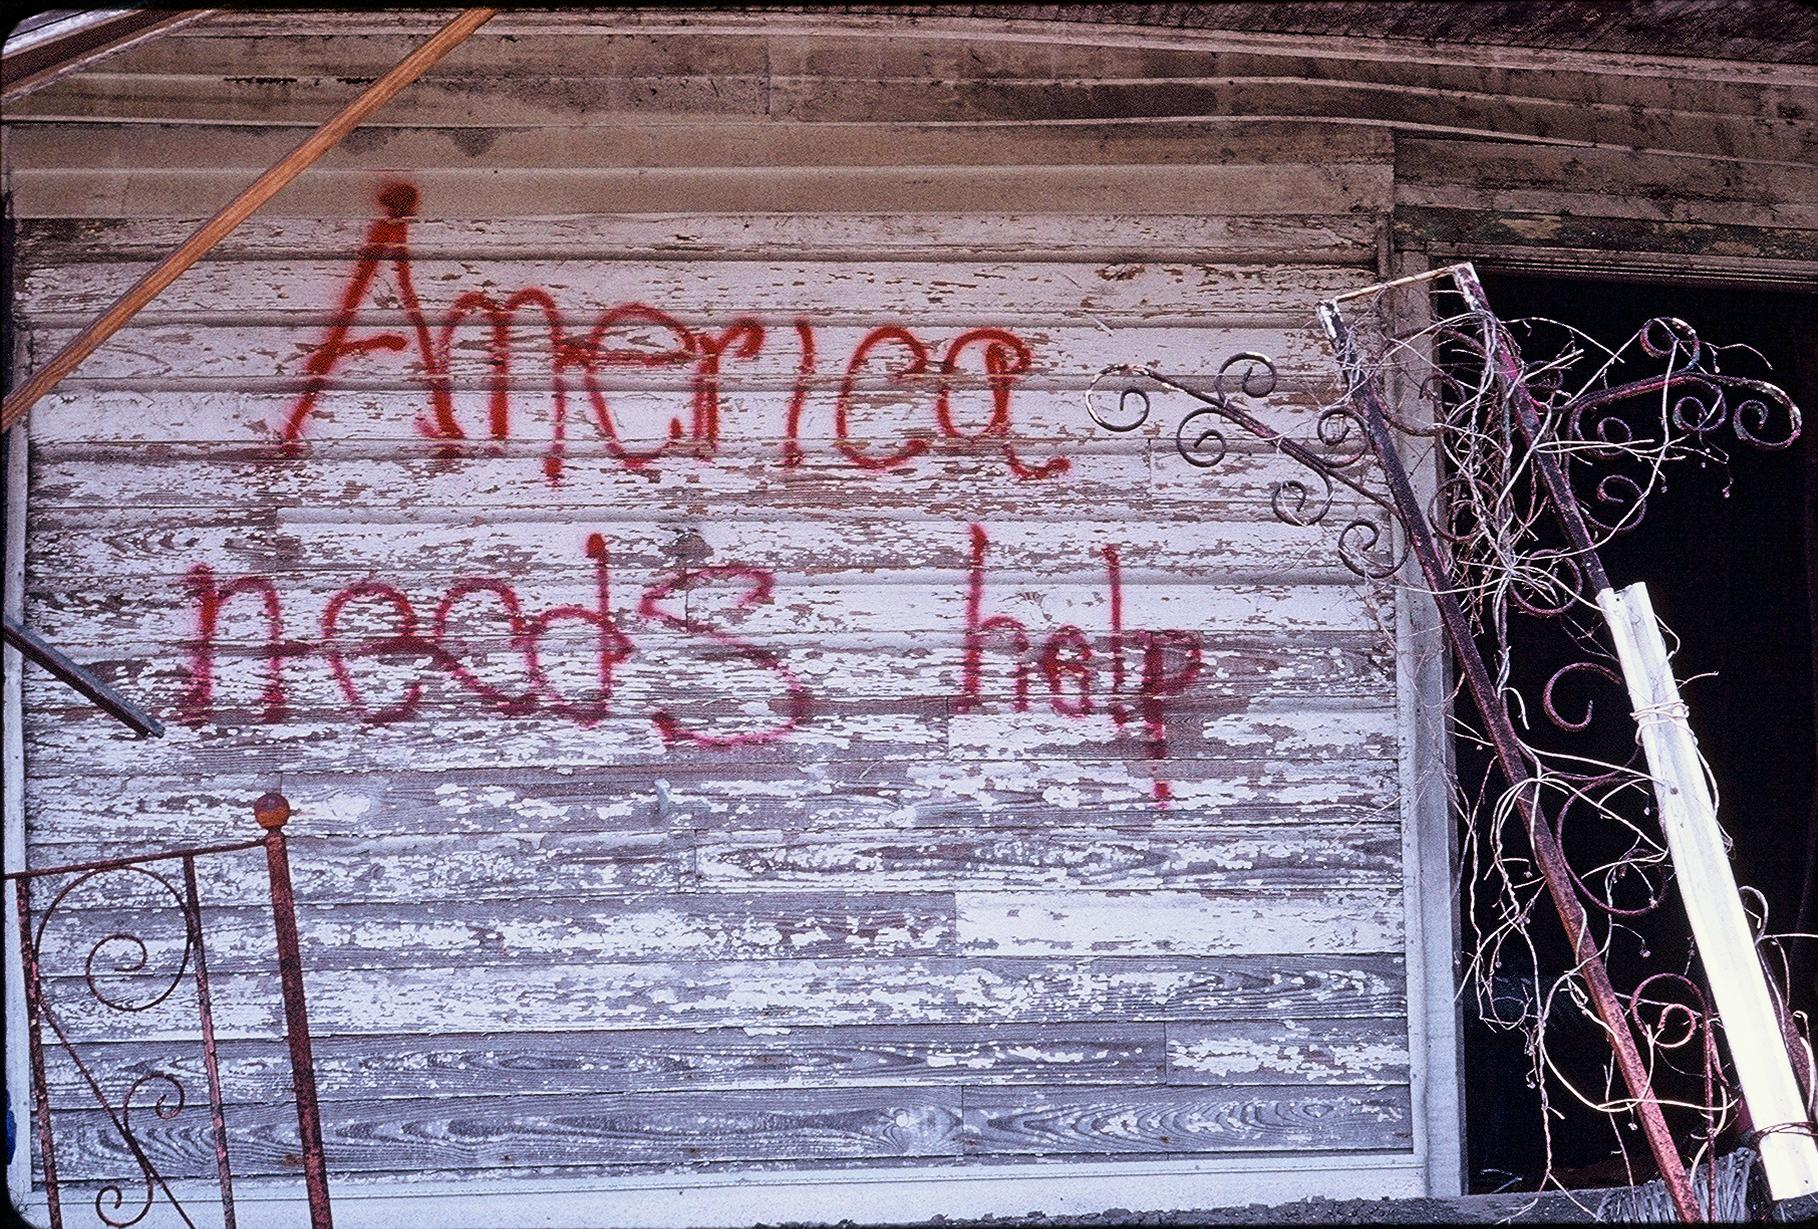 'New Orleans post-Katrina/'America needs help'